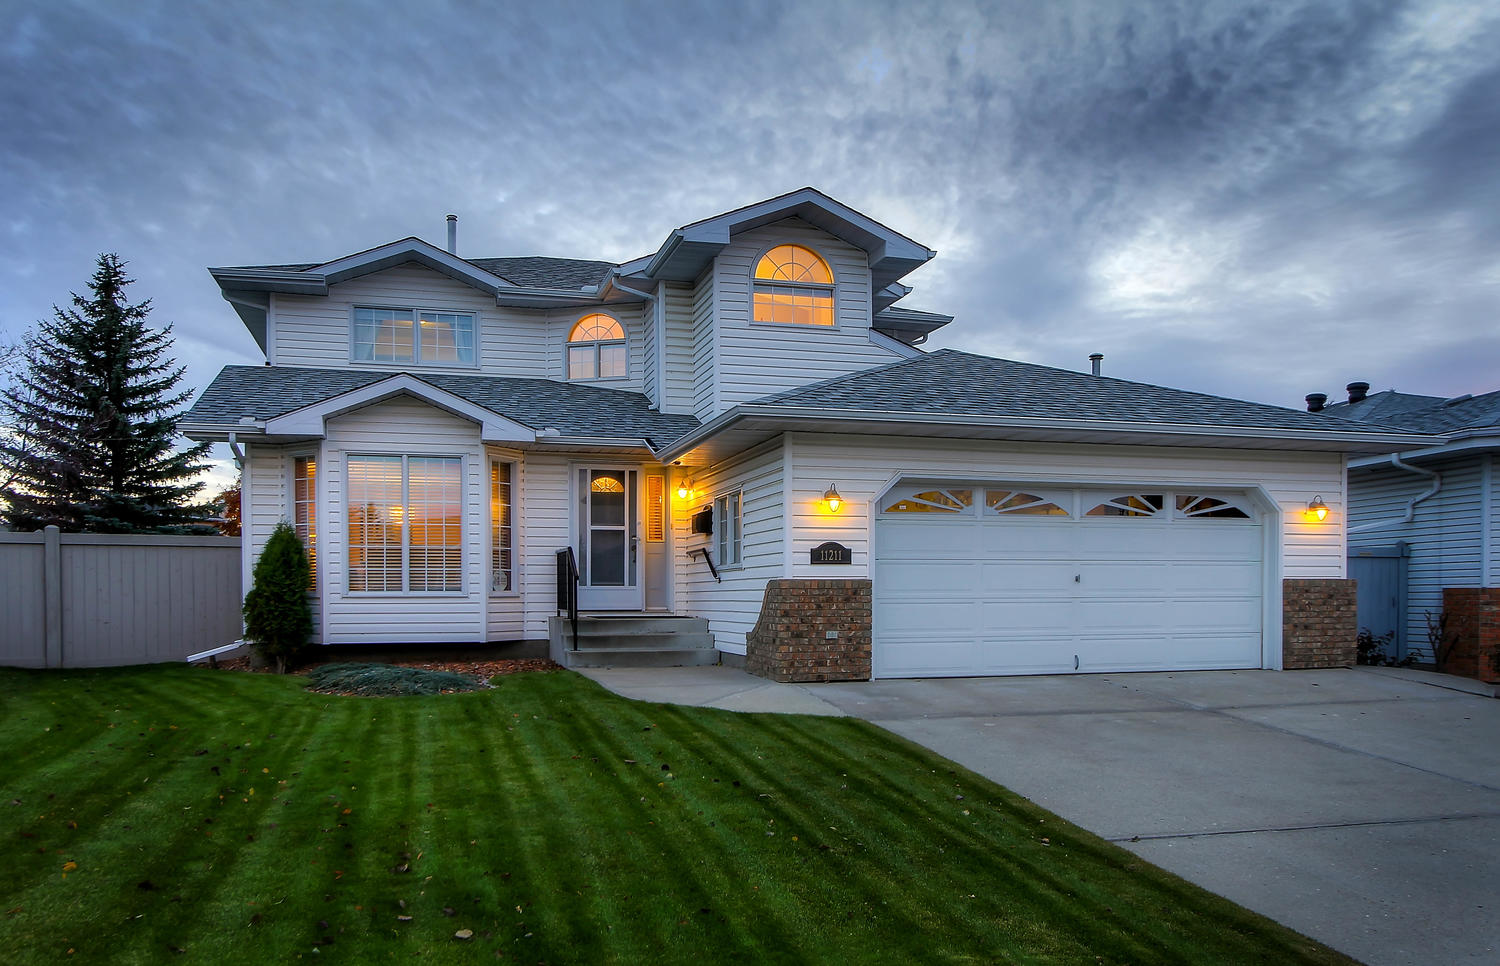 FEATURED LISTING: 11211 10 Avenue NW Edmonton